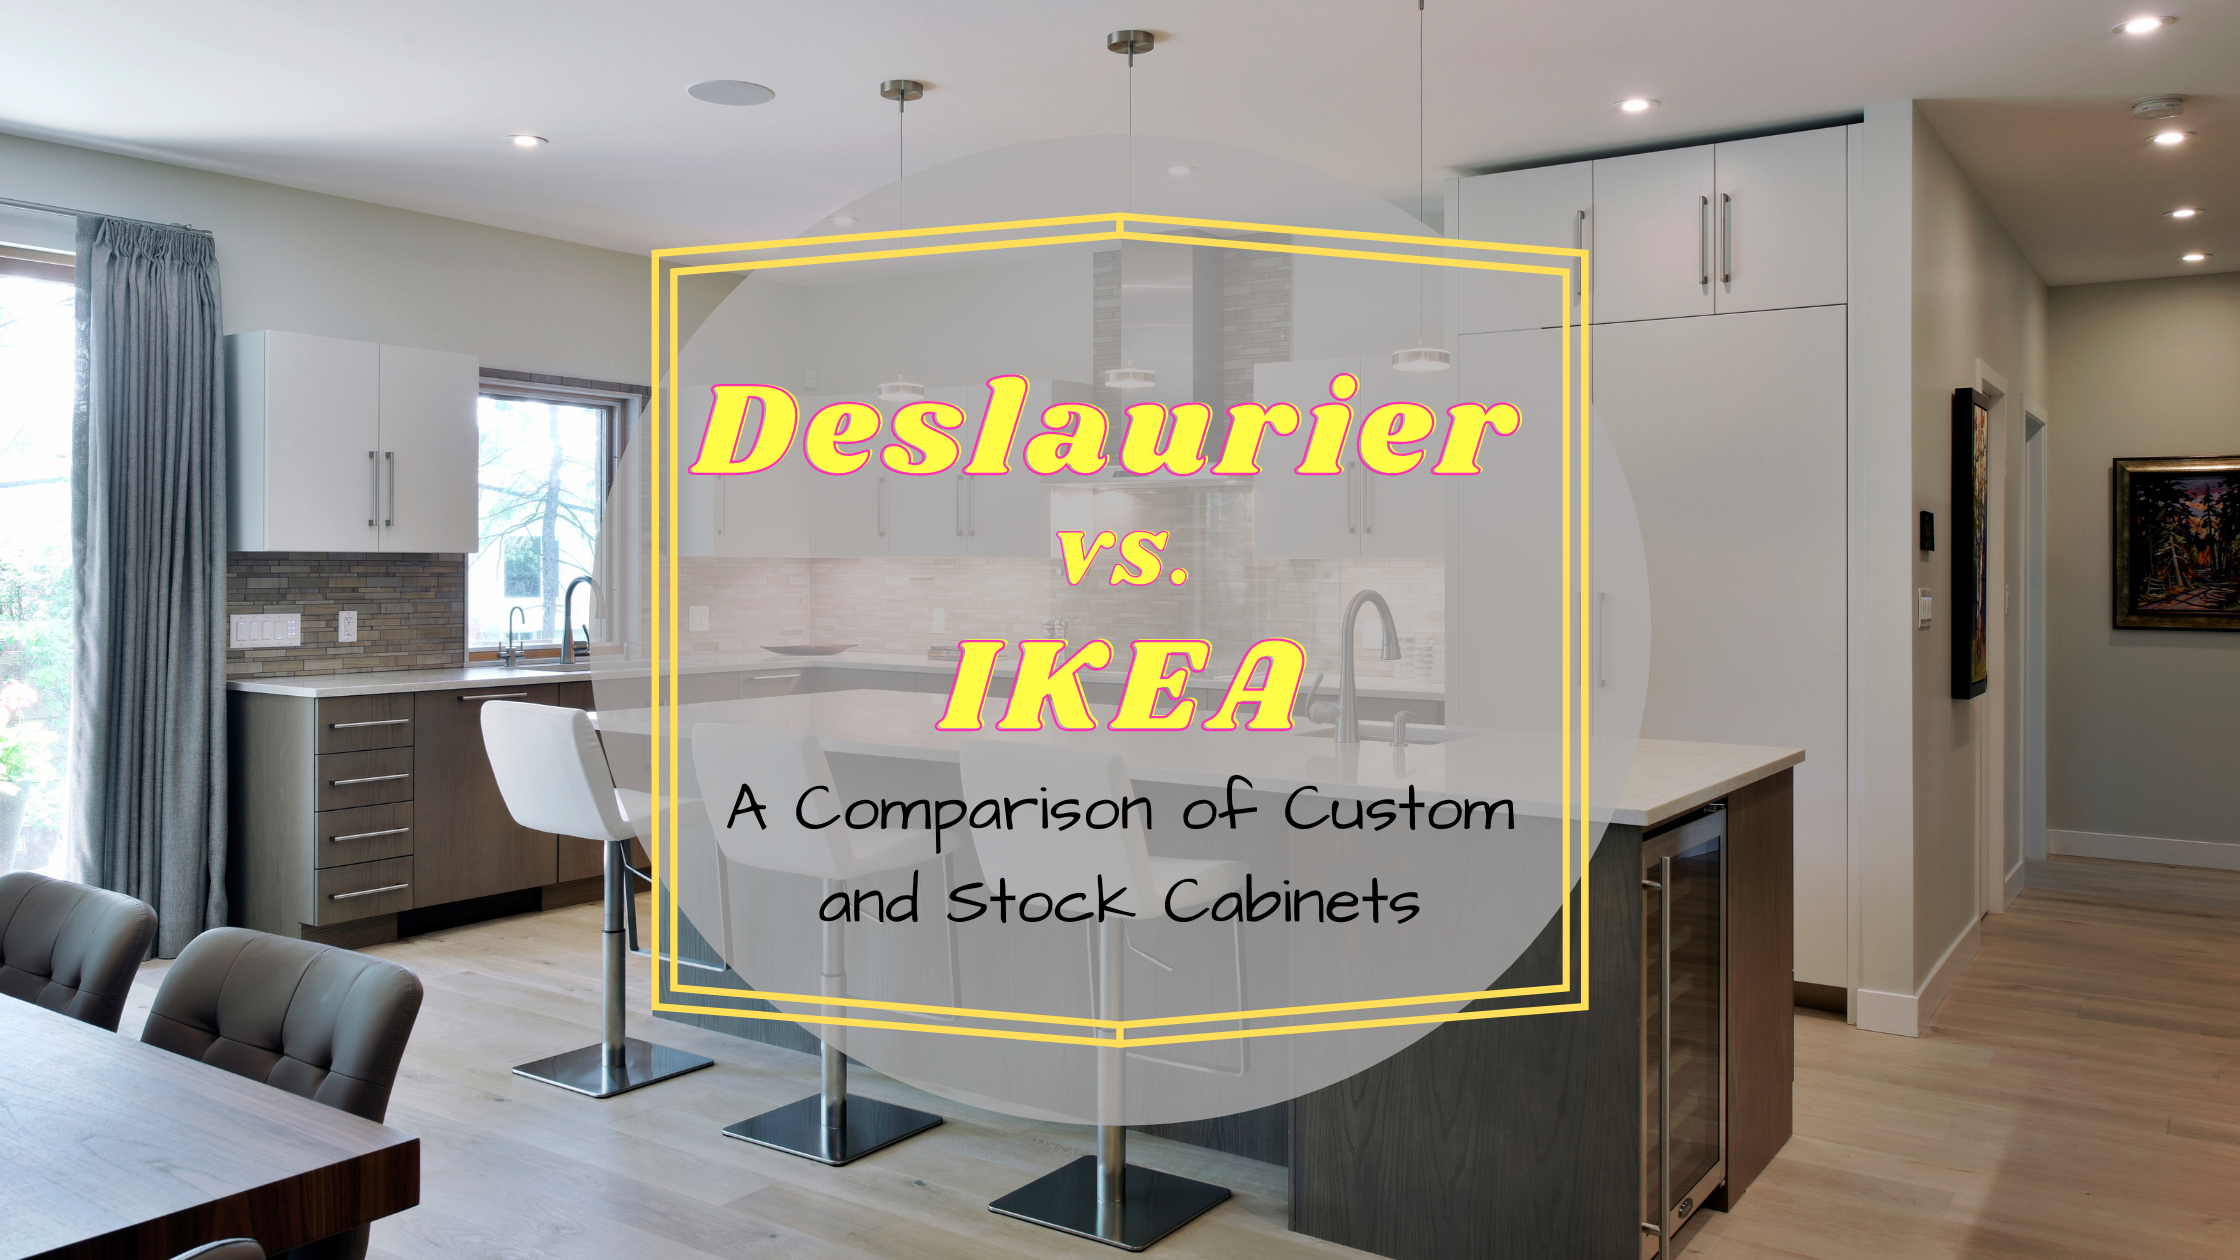 A state-of-the-art kitchen design by Deslaurier Custom Cabinets.